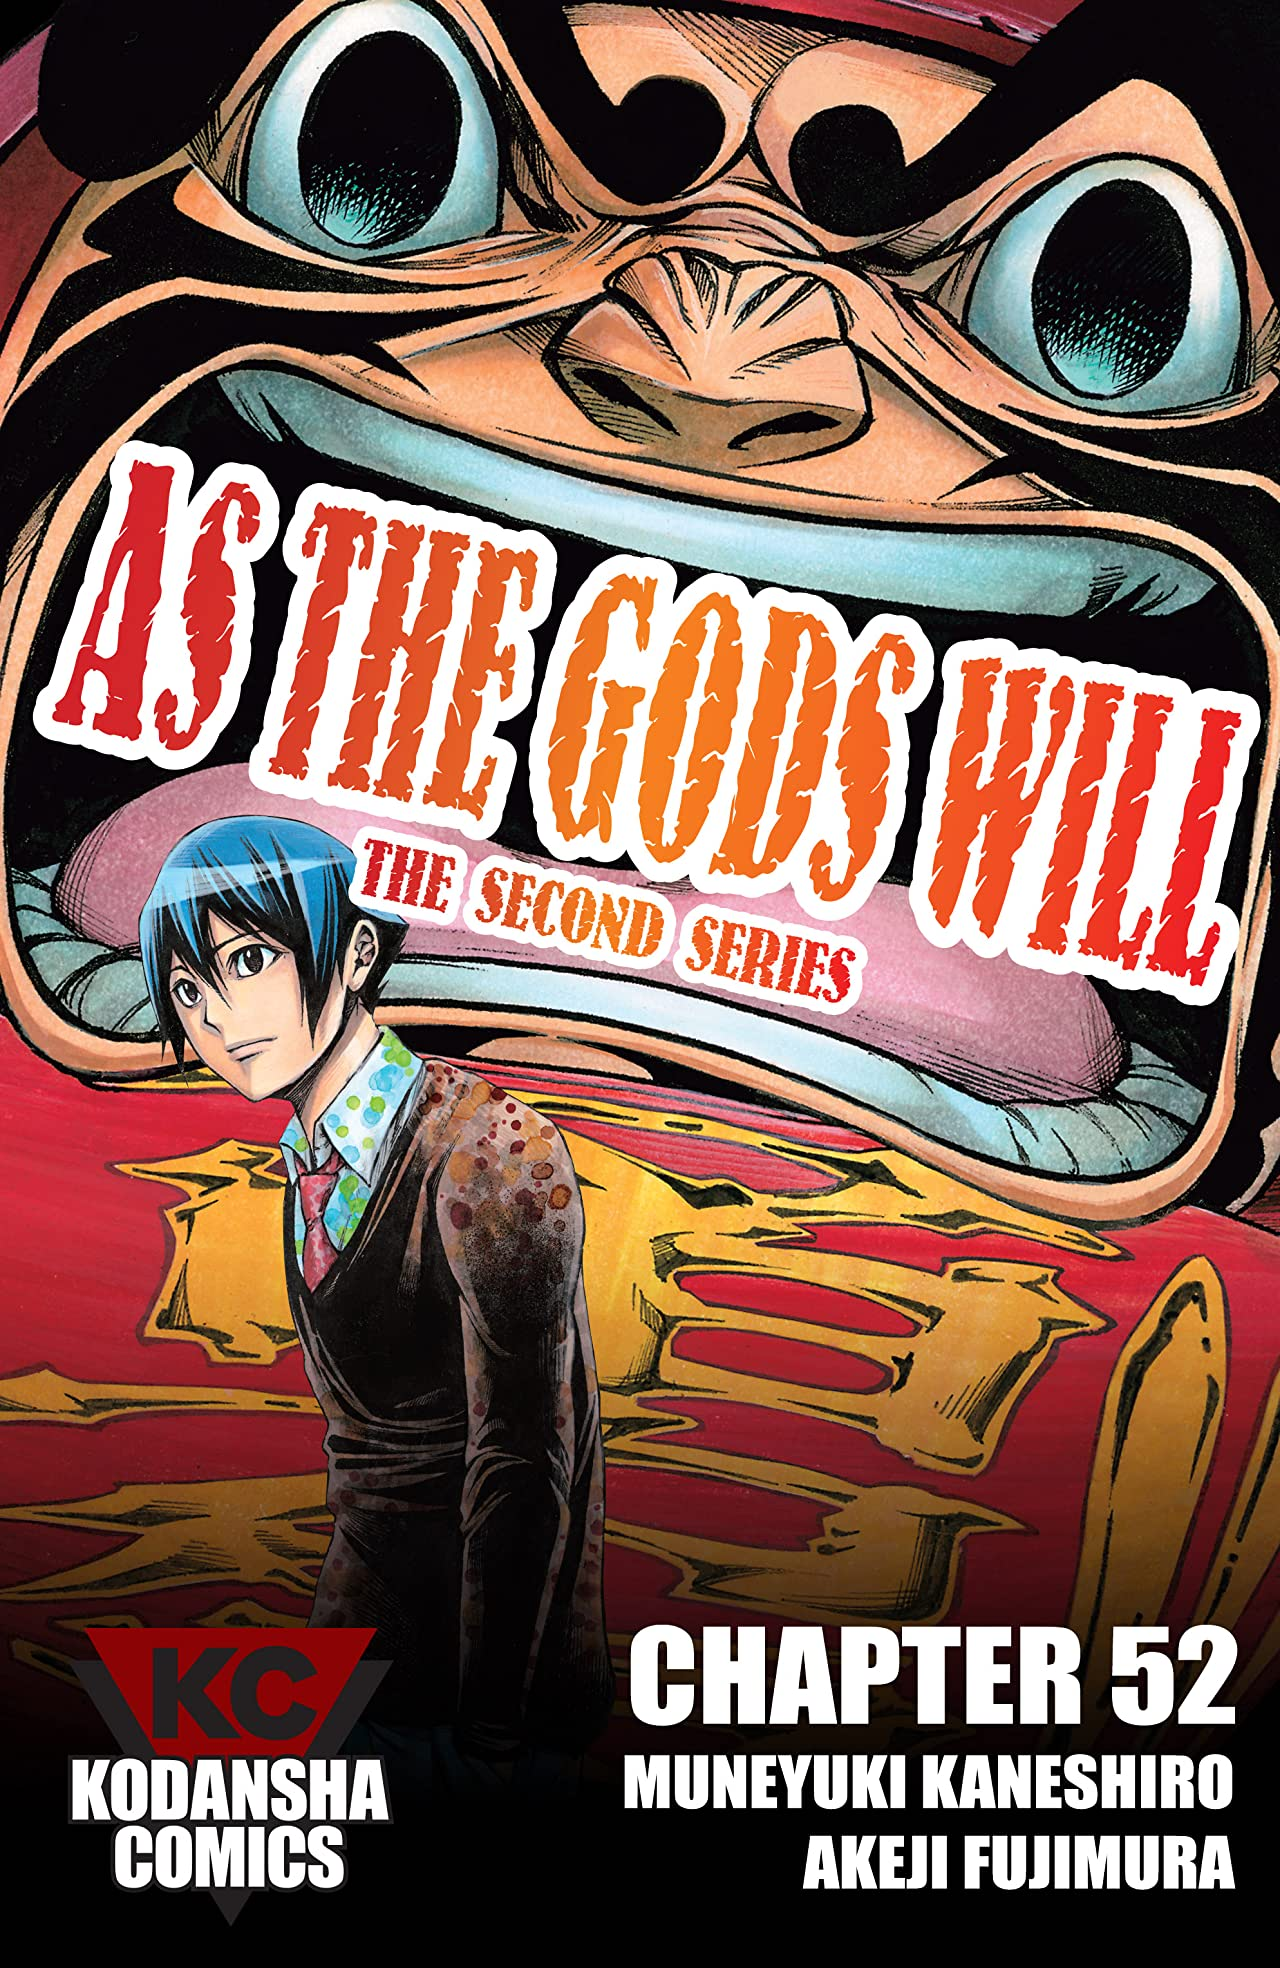 As The Gods Will: The Second Series #52